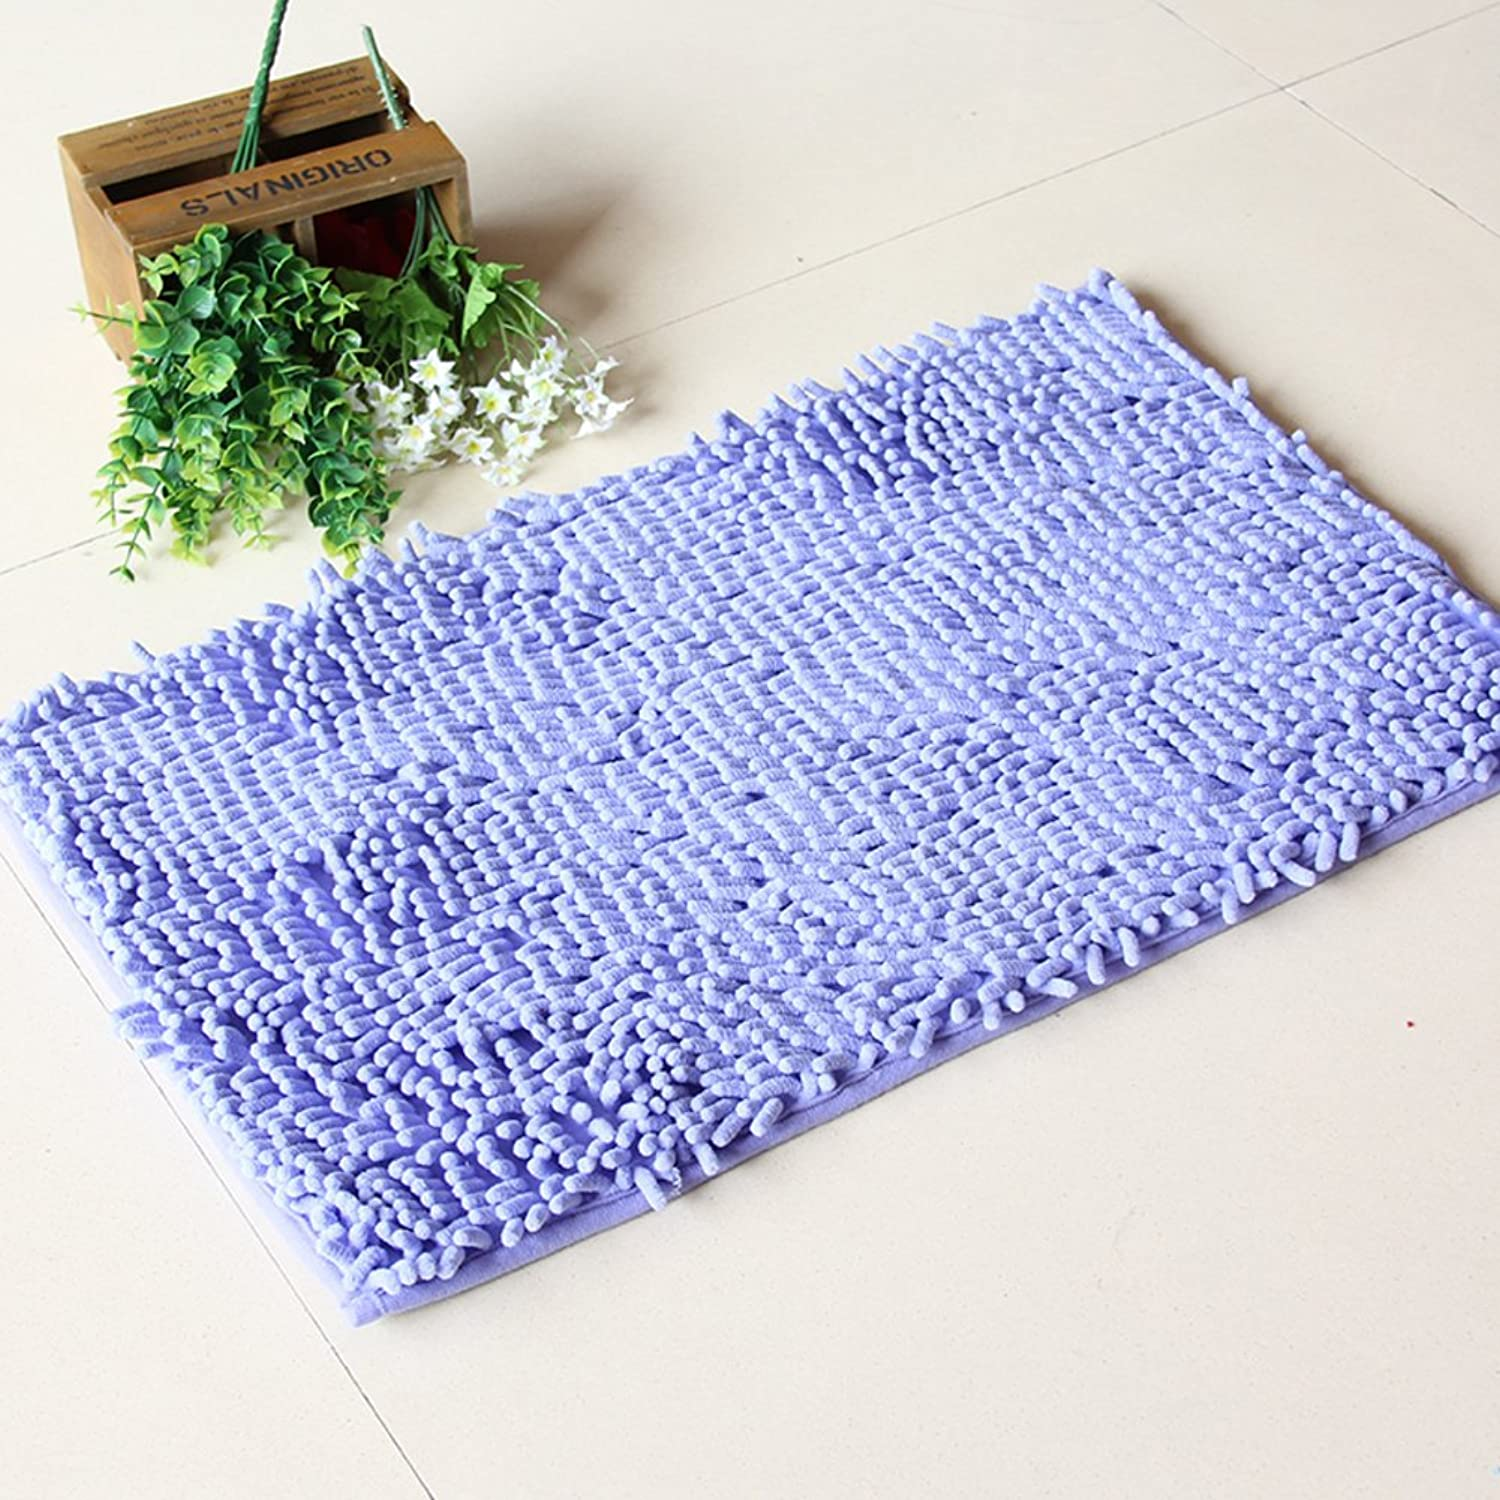 Floor mat Doormat Door mats Bedroom Kitchen Restroom Bathroom Non-Slipping mats-A 80x120cm(31x47inch)